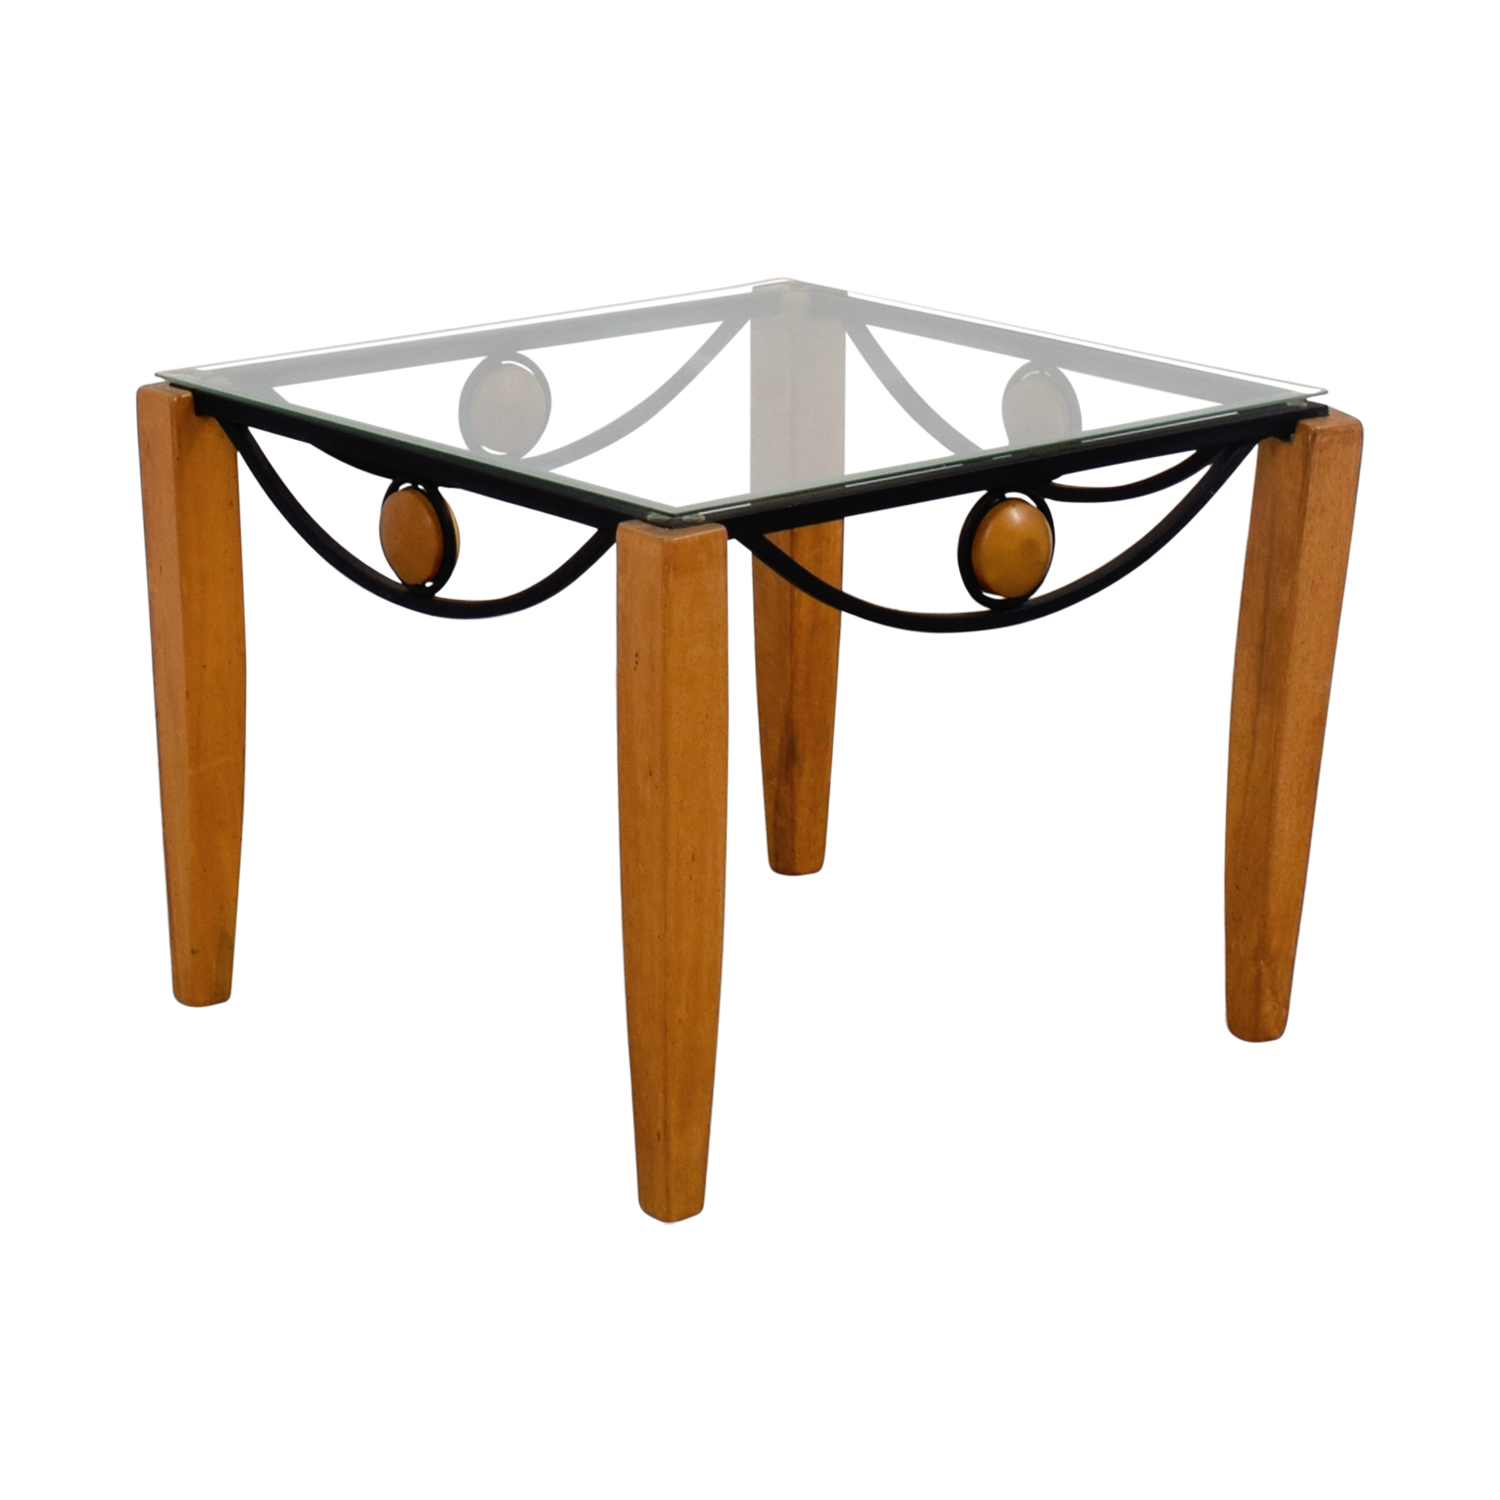 90 off metal and wood end table tables. Black Bedroom Furniture Sets. Home Design Ideas